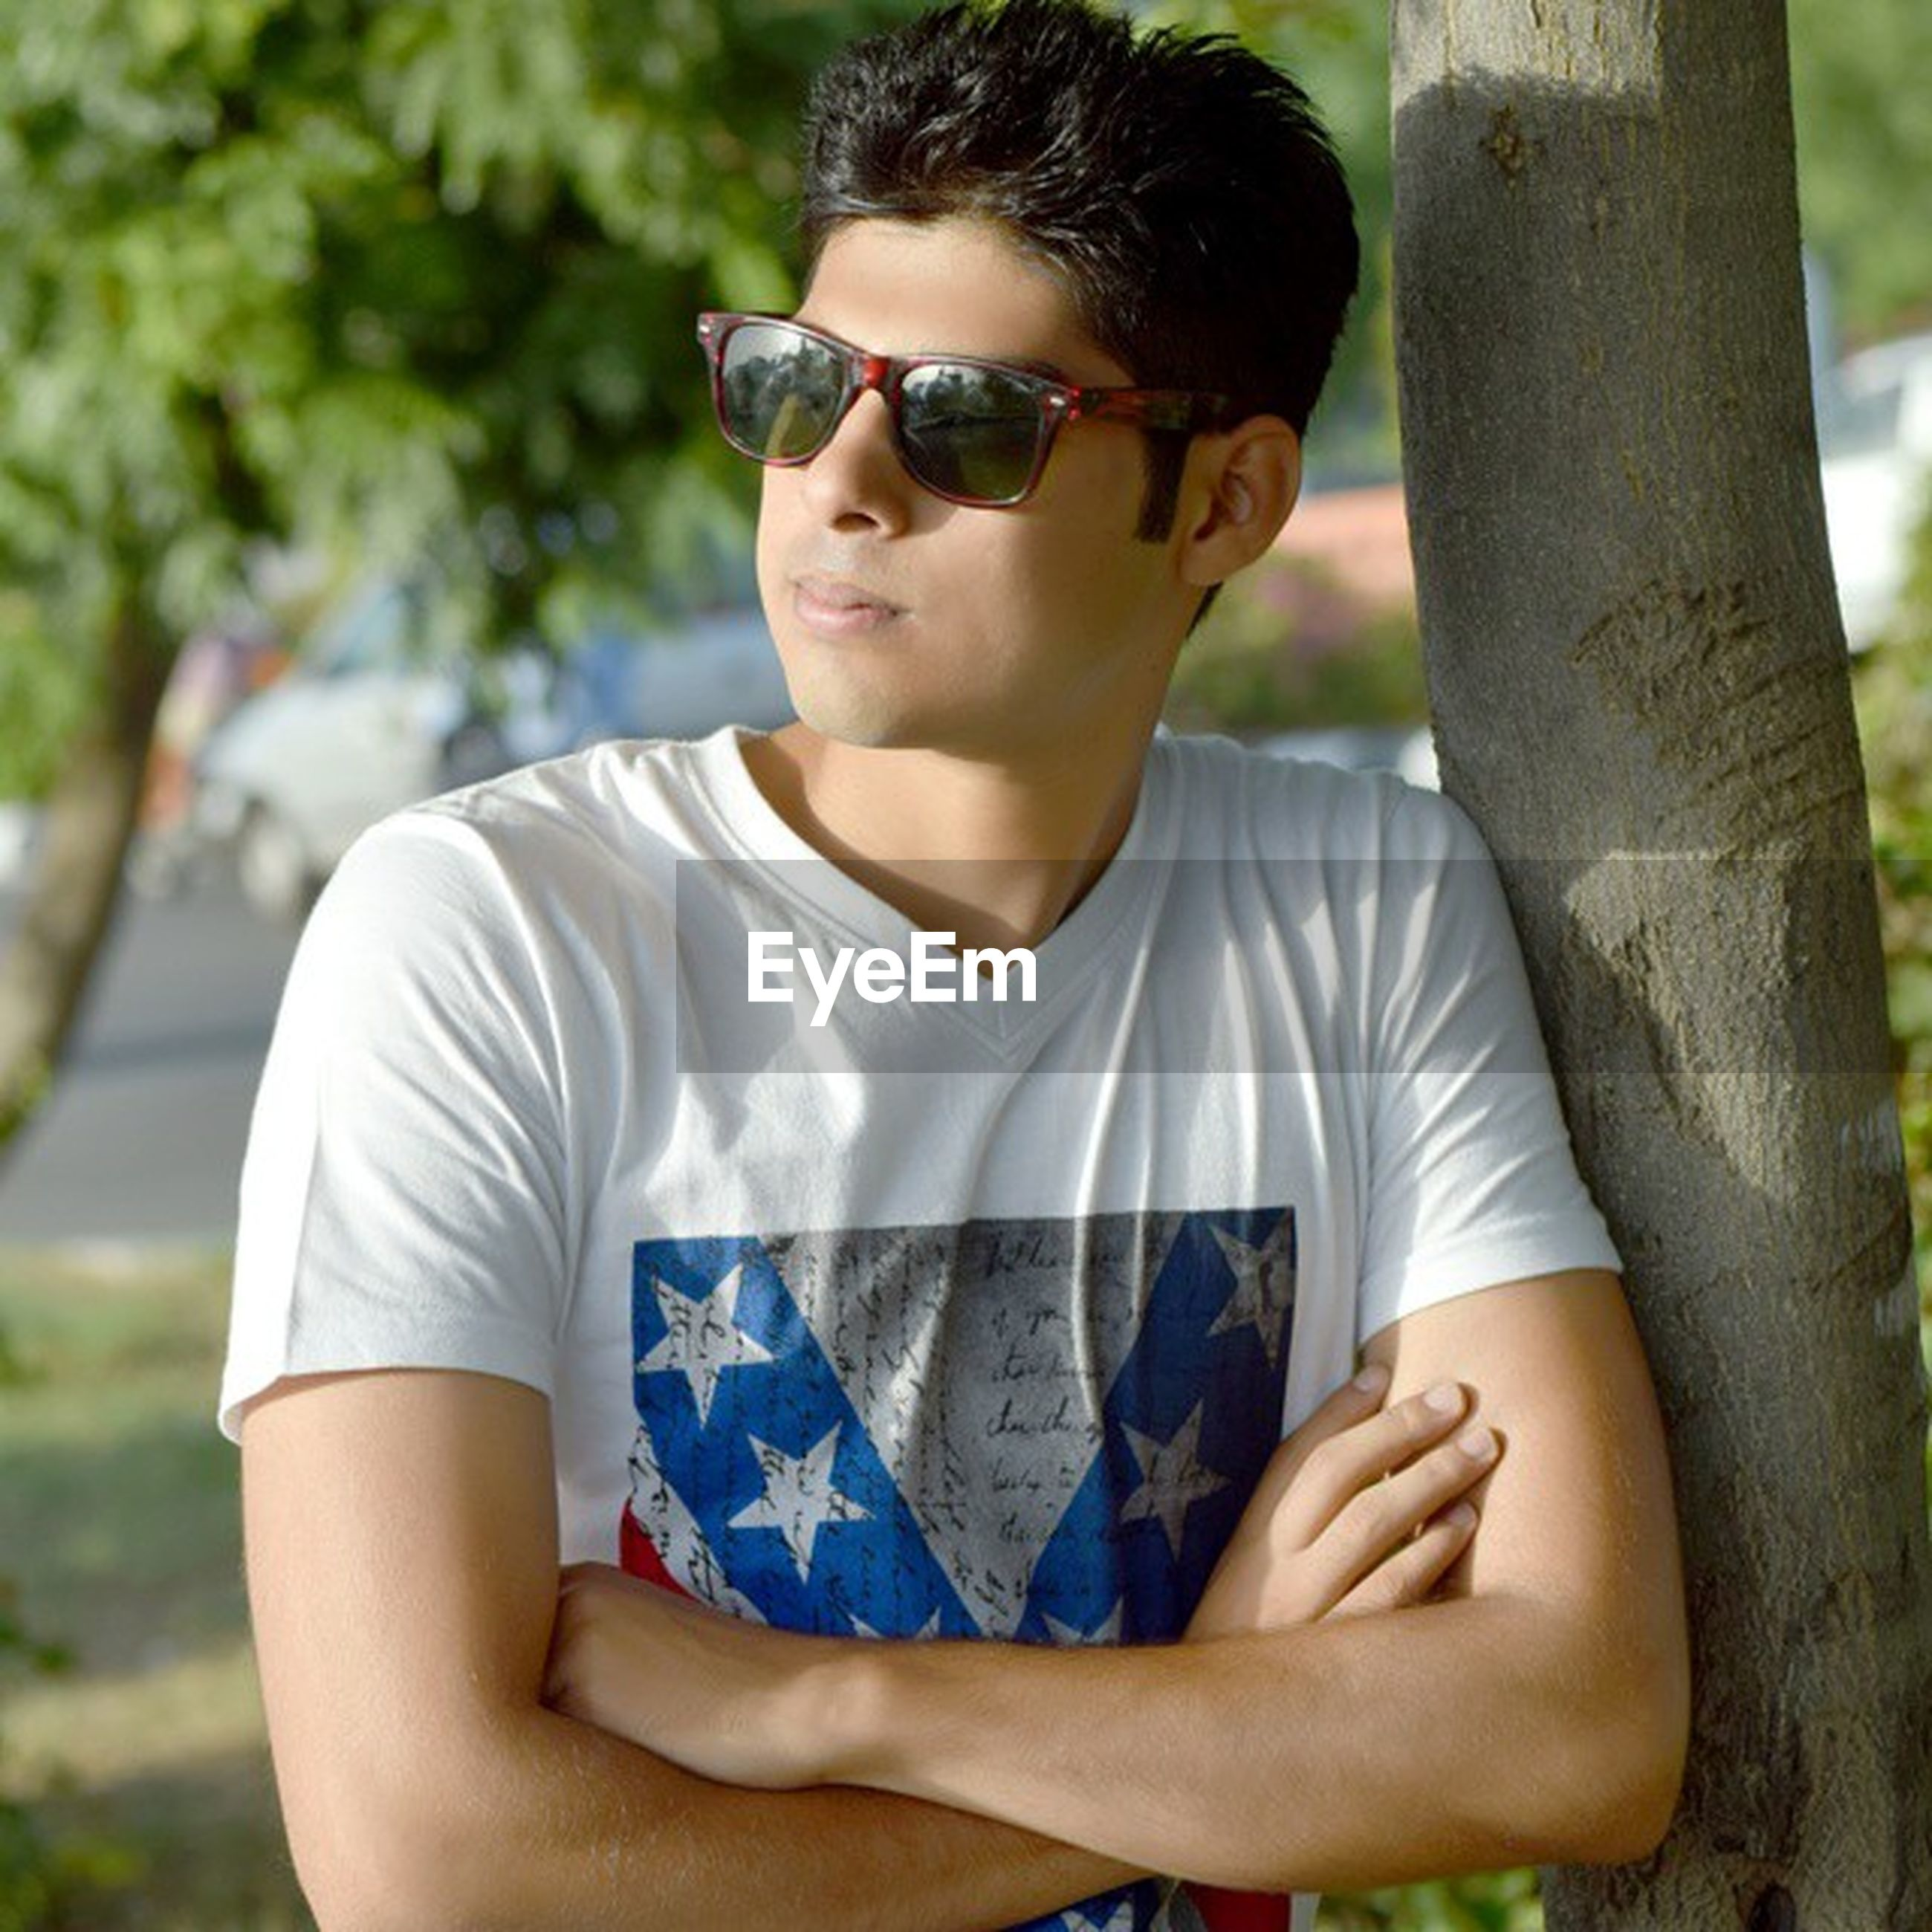 lifestyles, young adult, person, leisure activity, casual clothing, focus on foreground, front view, sunglasses, looking at camera, portrait, holding, waist up, young men, sitting, three quarter length, smiling